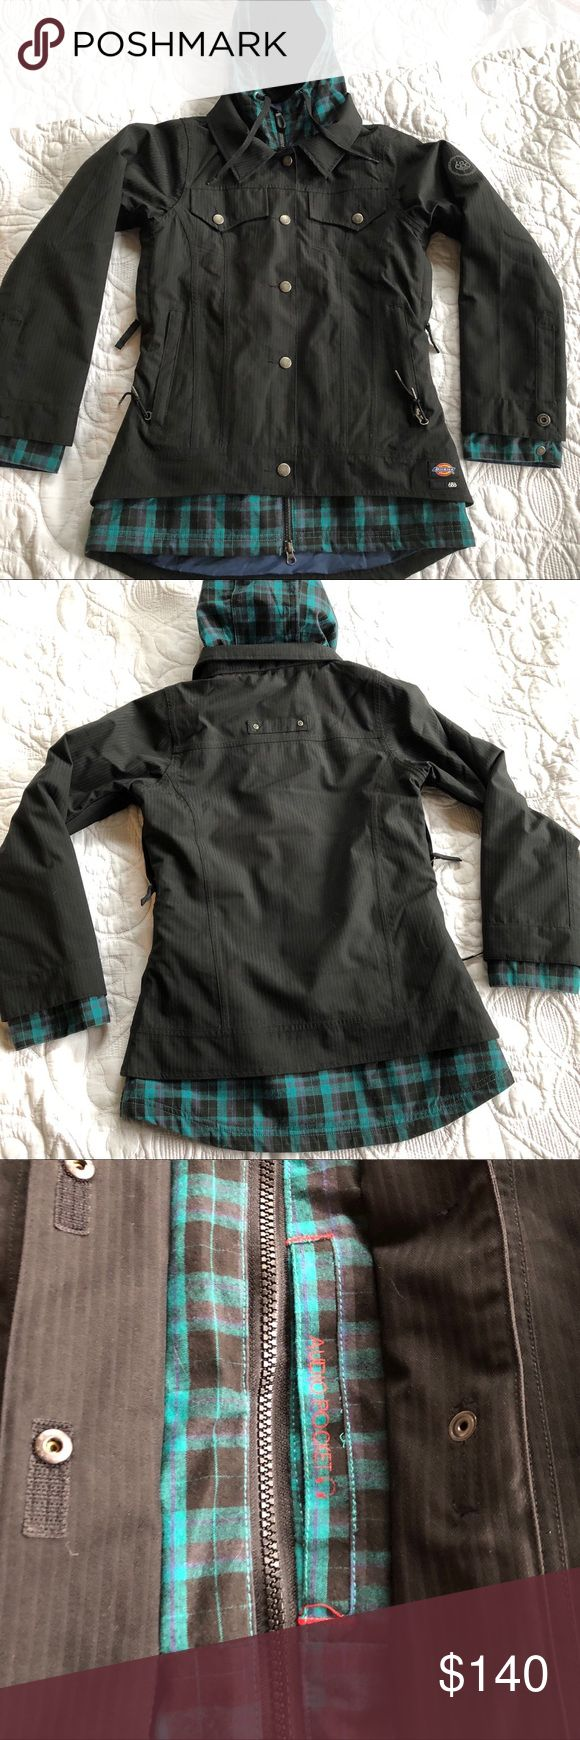 686 snowboarding jacket black/ teal plaid accents Xs women's snowboarding jacket. Black , with teal plaid. There are Darker back stripes on black part. No stains not tares. Like new. Selling the pants that match/ bundle those and I will send a non obligated offer 👍🏻😆 686 Jackets & Coats